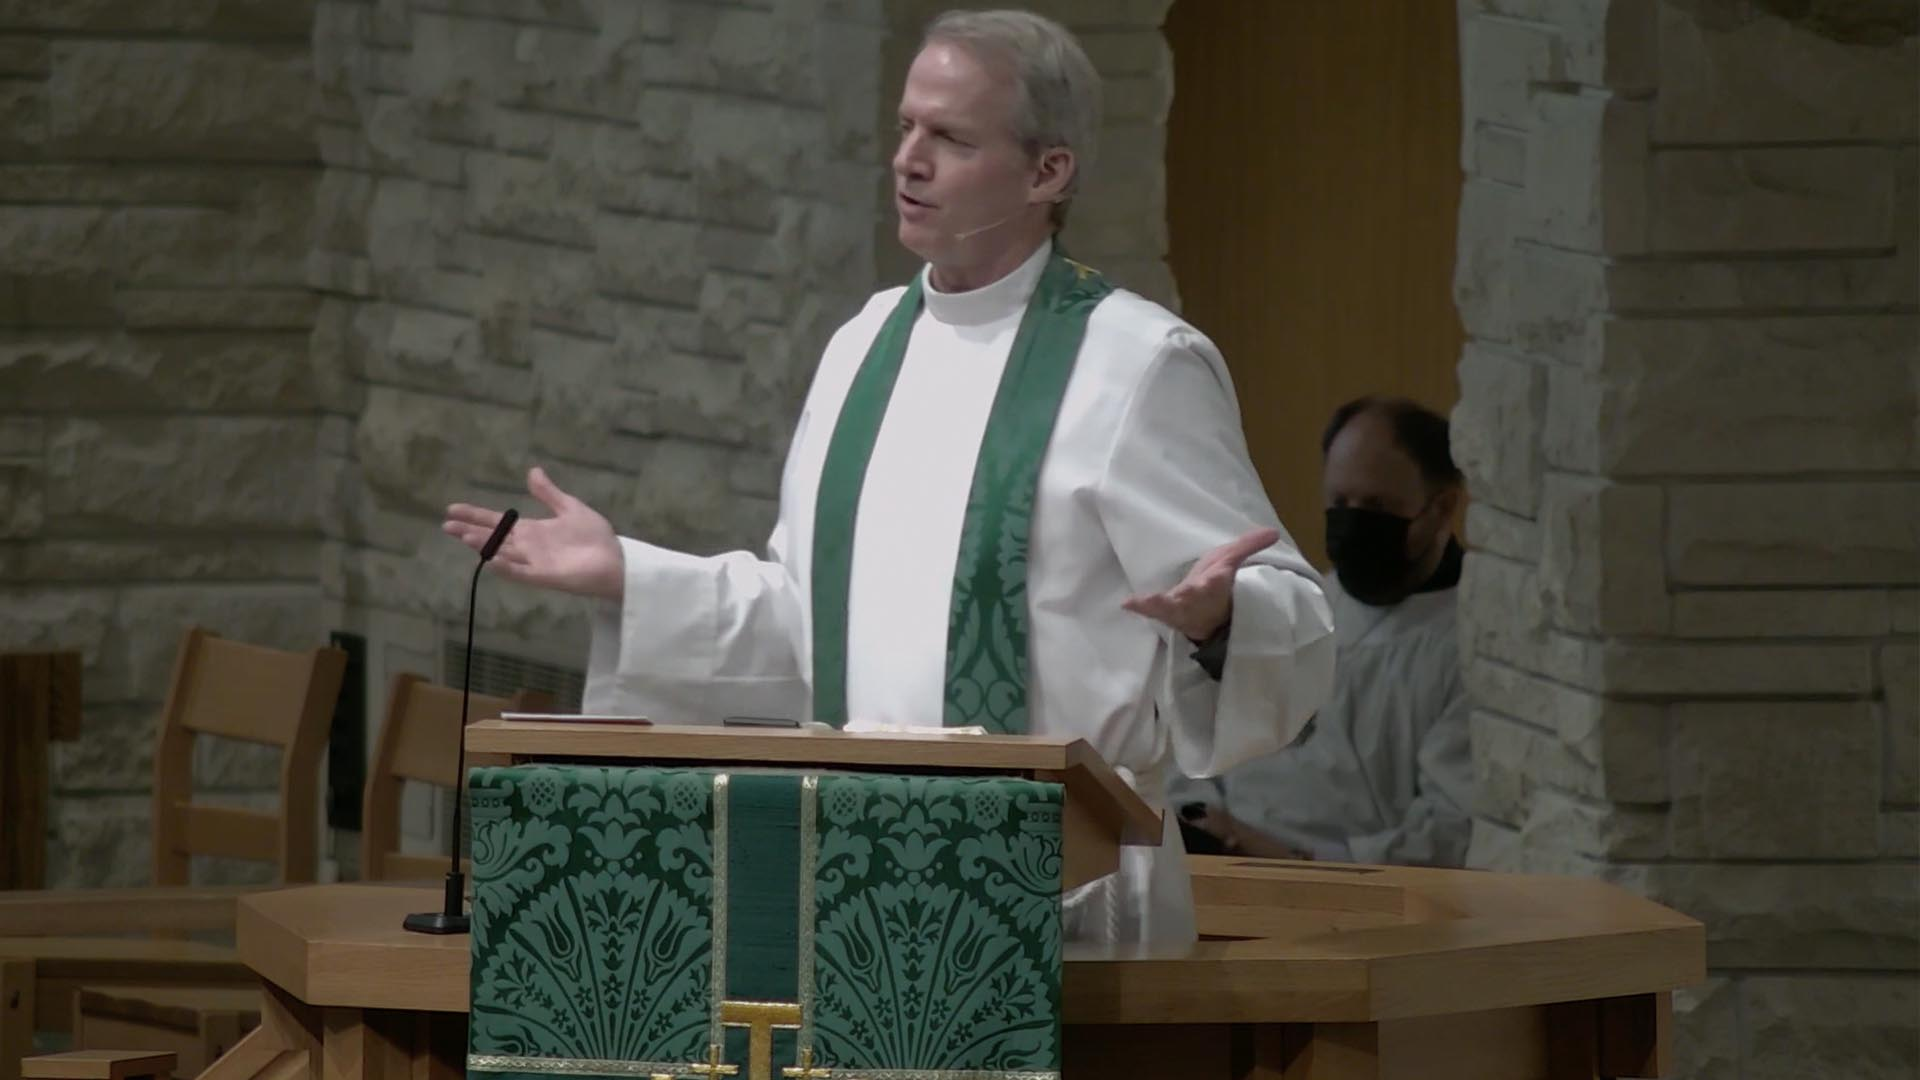 The One Thing - Sermon by Leigh Spruill